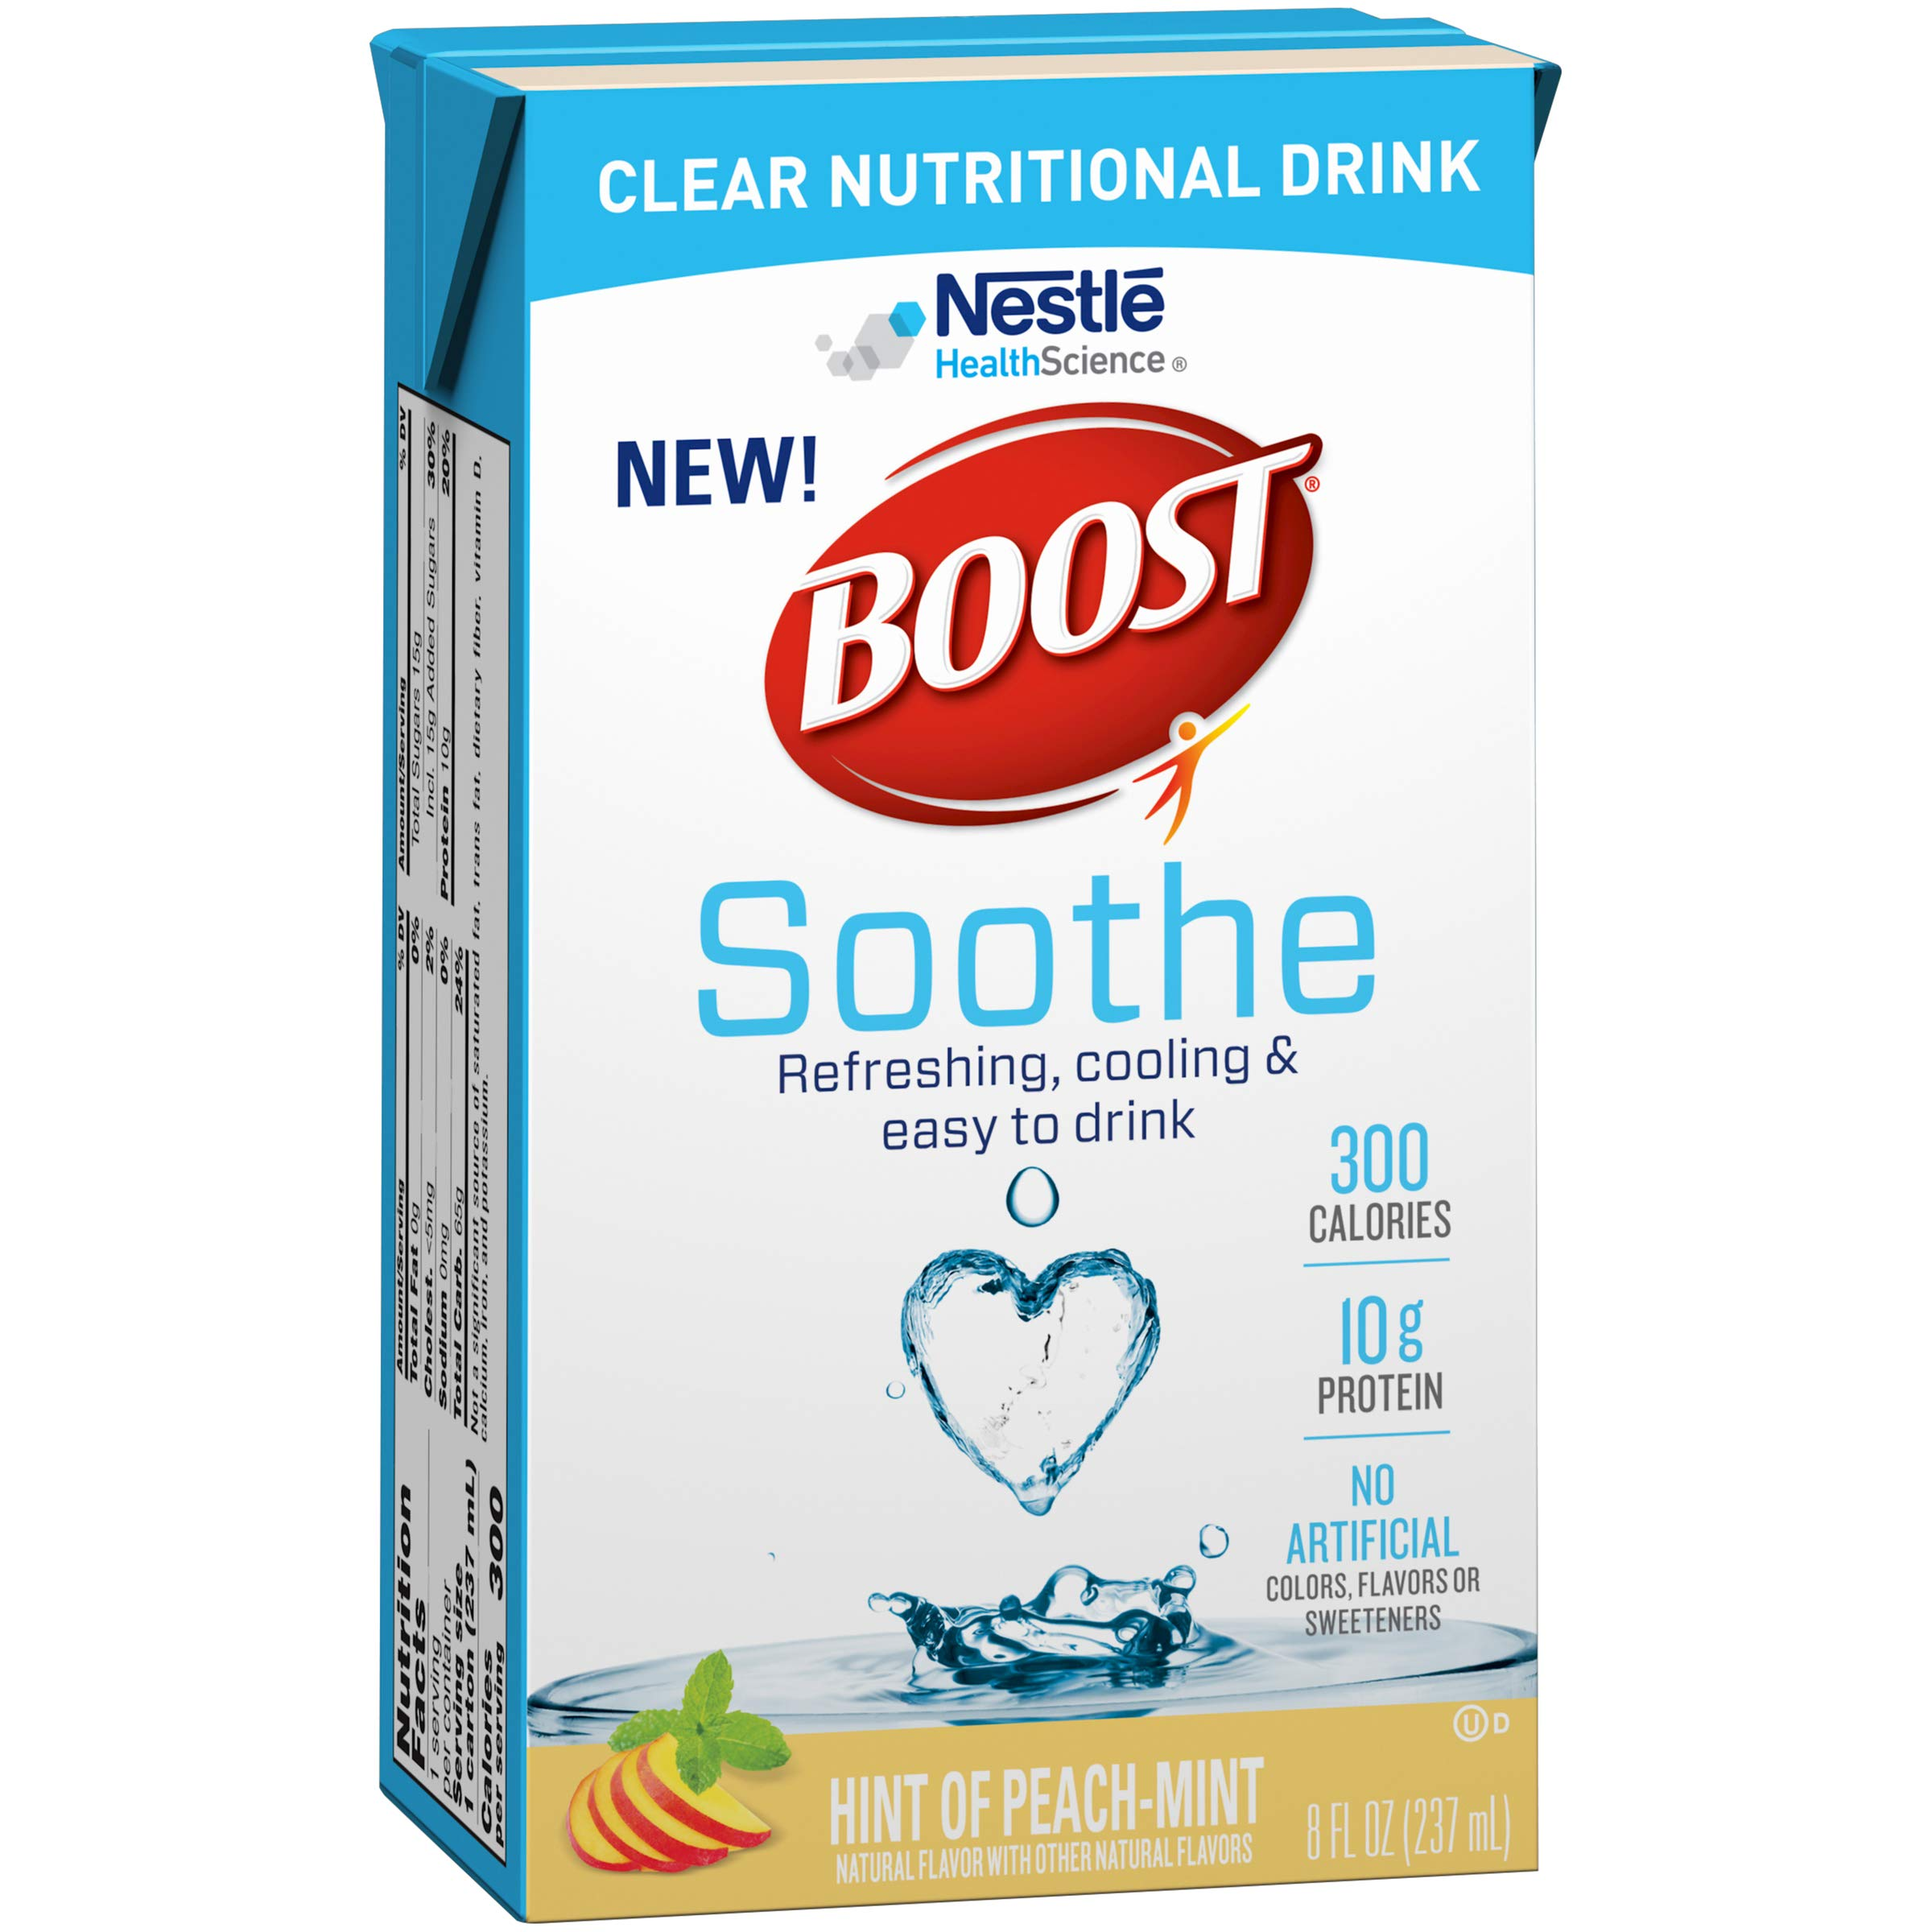 Boost Soothe Clear Nutritional Drink, Hint of Peach-Mint, 8 OZ (Pack - 27) by BOOST Soothe